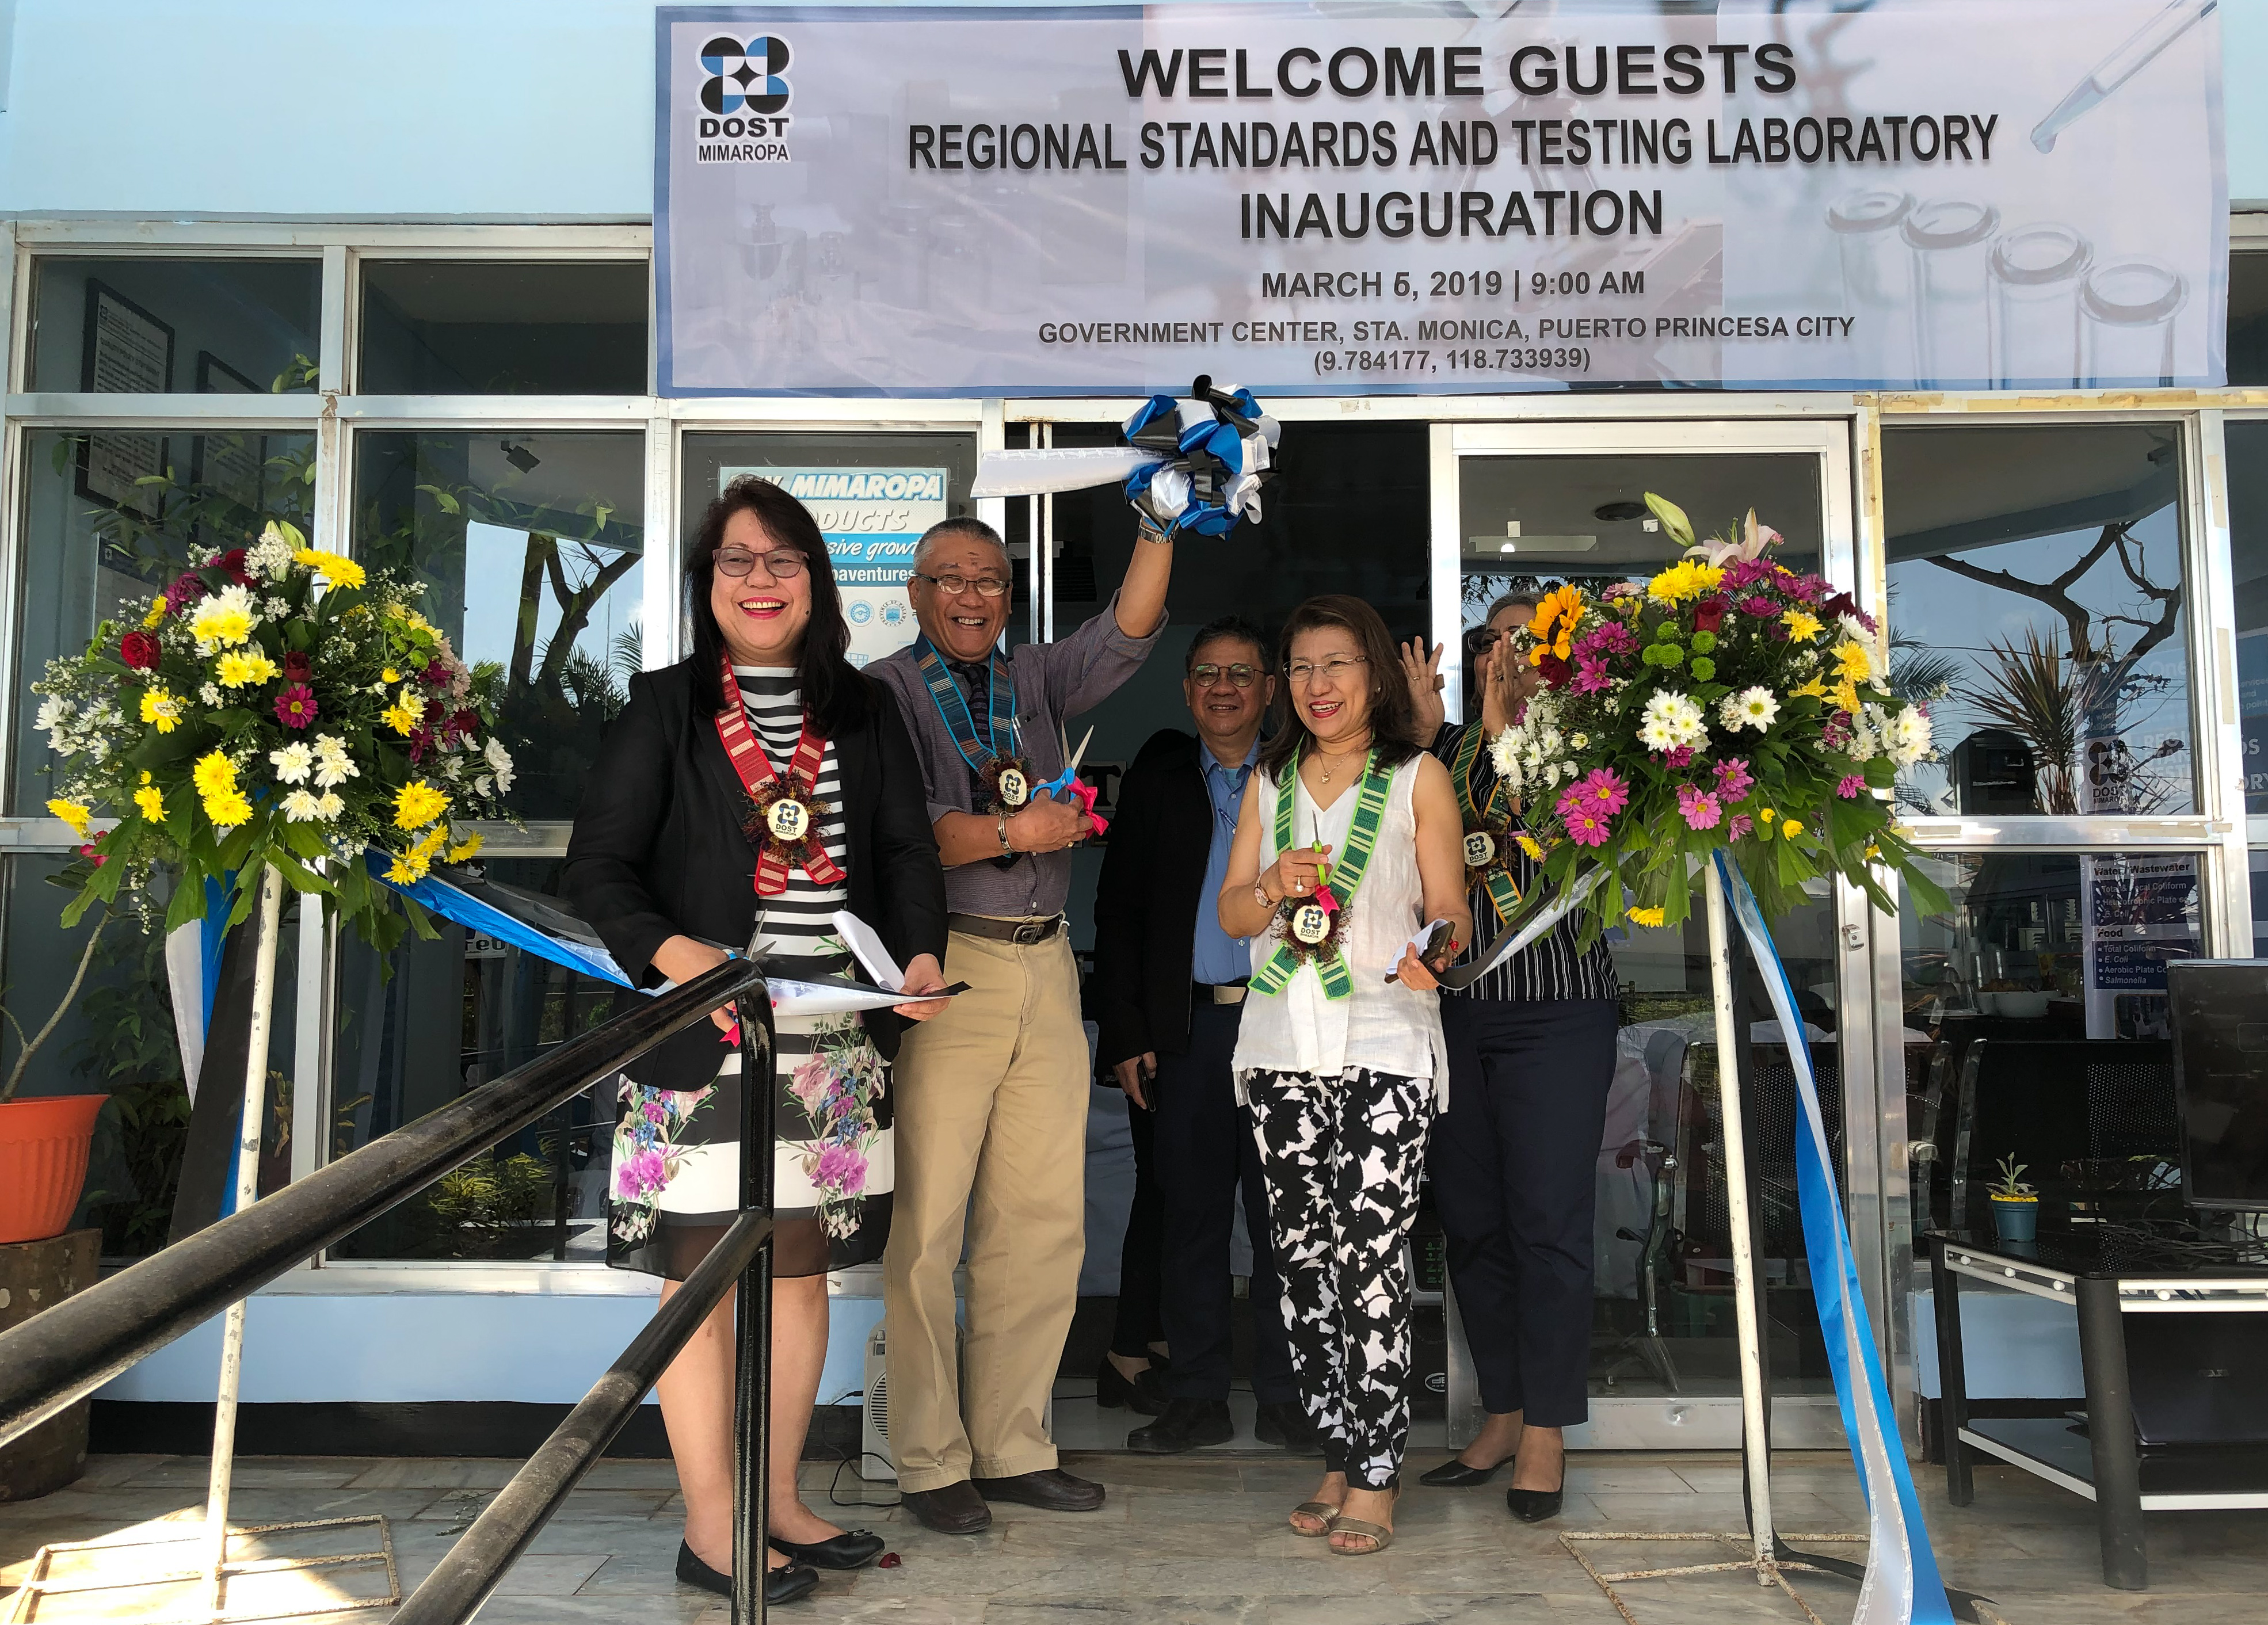 DOST Undersecretary for Regional Operations Dr. Brenda L. Nazareth-Manzano, Palawan Vice Governor Victorino Dennis Socrates, DOST-MIMAROPA Regional Director Dr. Ma. Josefina P. Abilay and NEDA-MIMAROPA OIC Regional Director Susan A. Sumbeling cuts the ribbon to mark the formal opening of the MIMAROPA Regional Standards and Testing Laboratory.